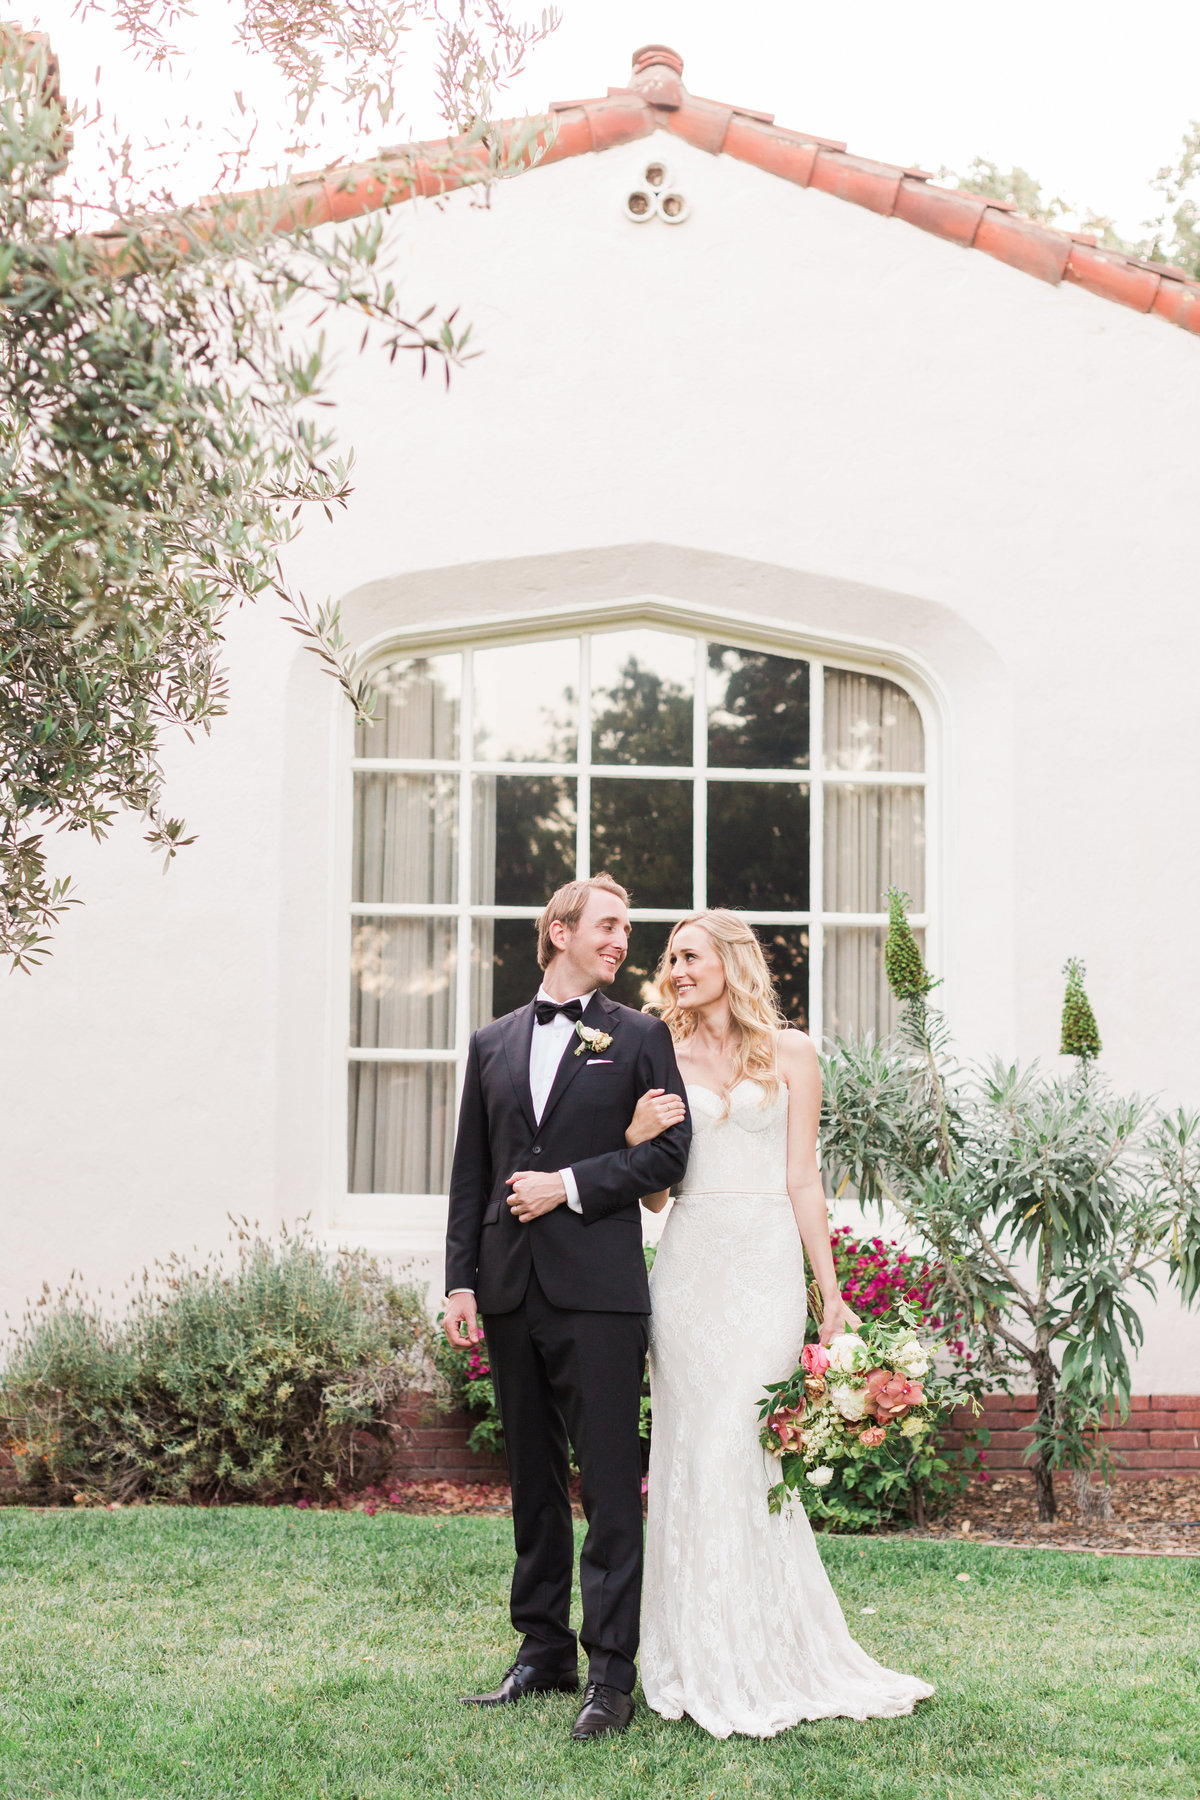 Quail_Ranch_Blush_California_Wedding_Valorie_Darling_Photography - 150 of 151